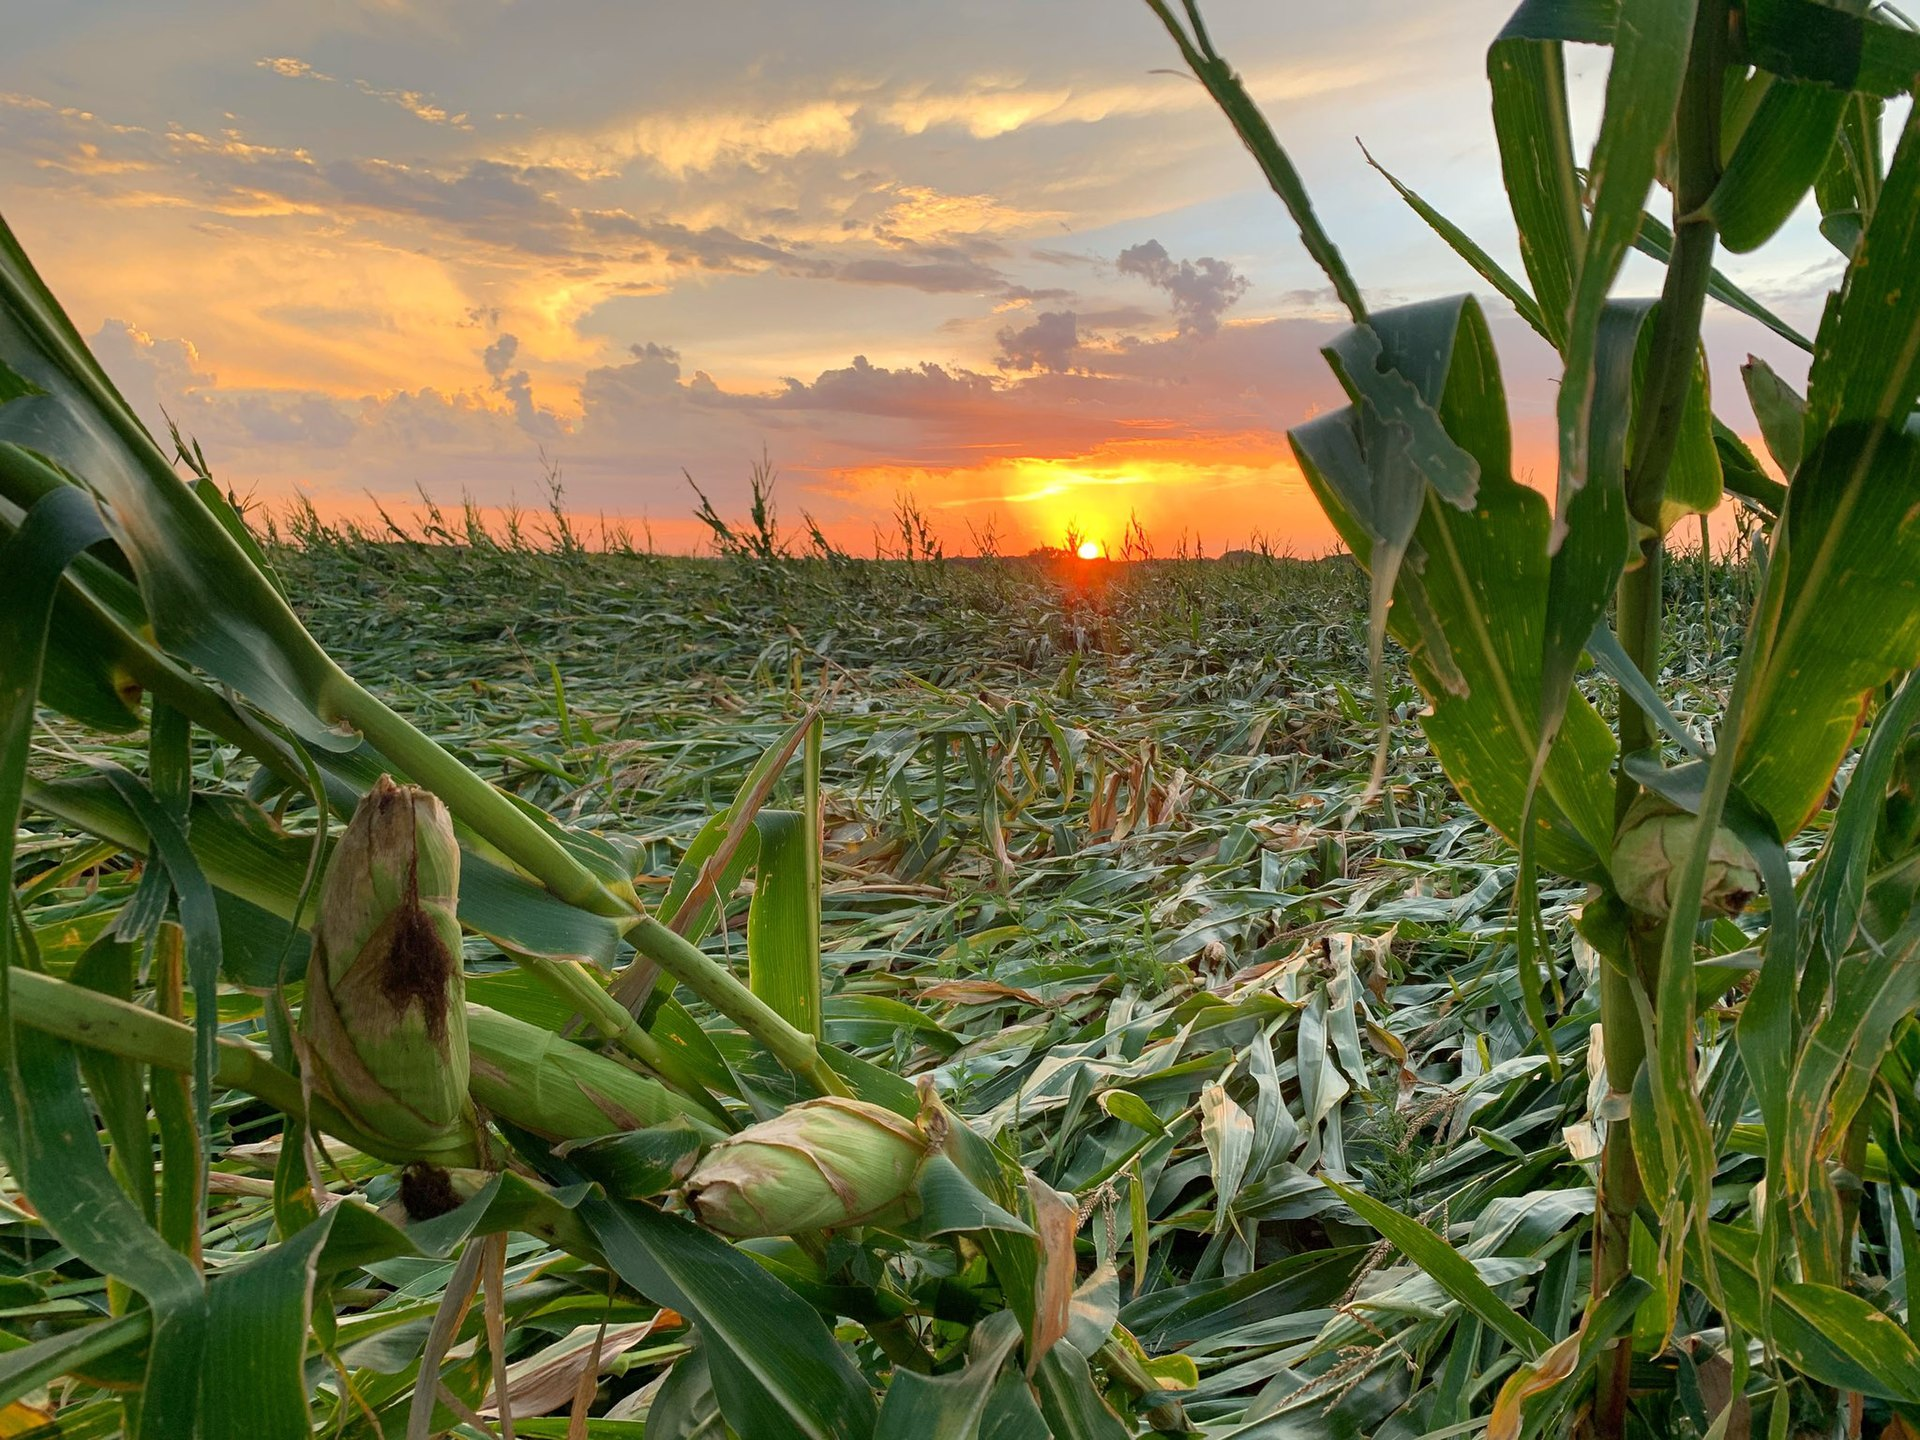 Last Year's Extreme Weather Cost Iowa's Farmers Millions